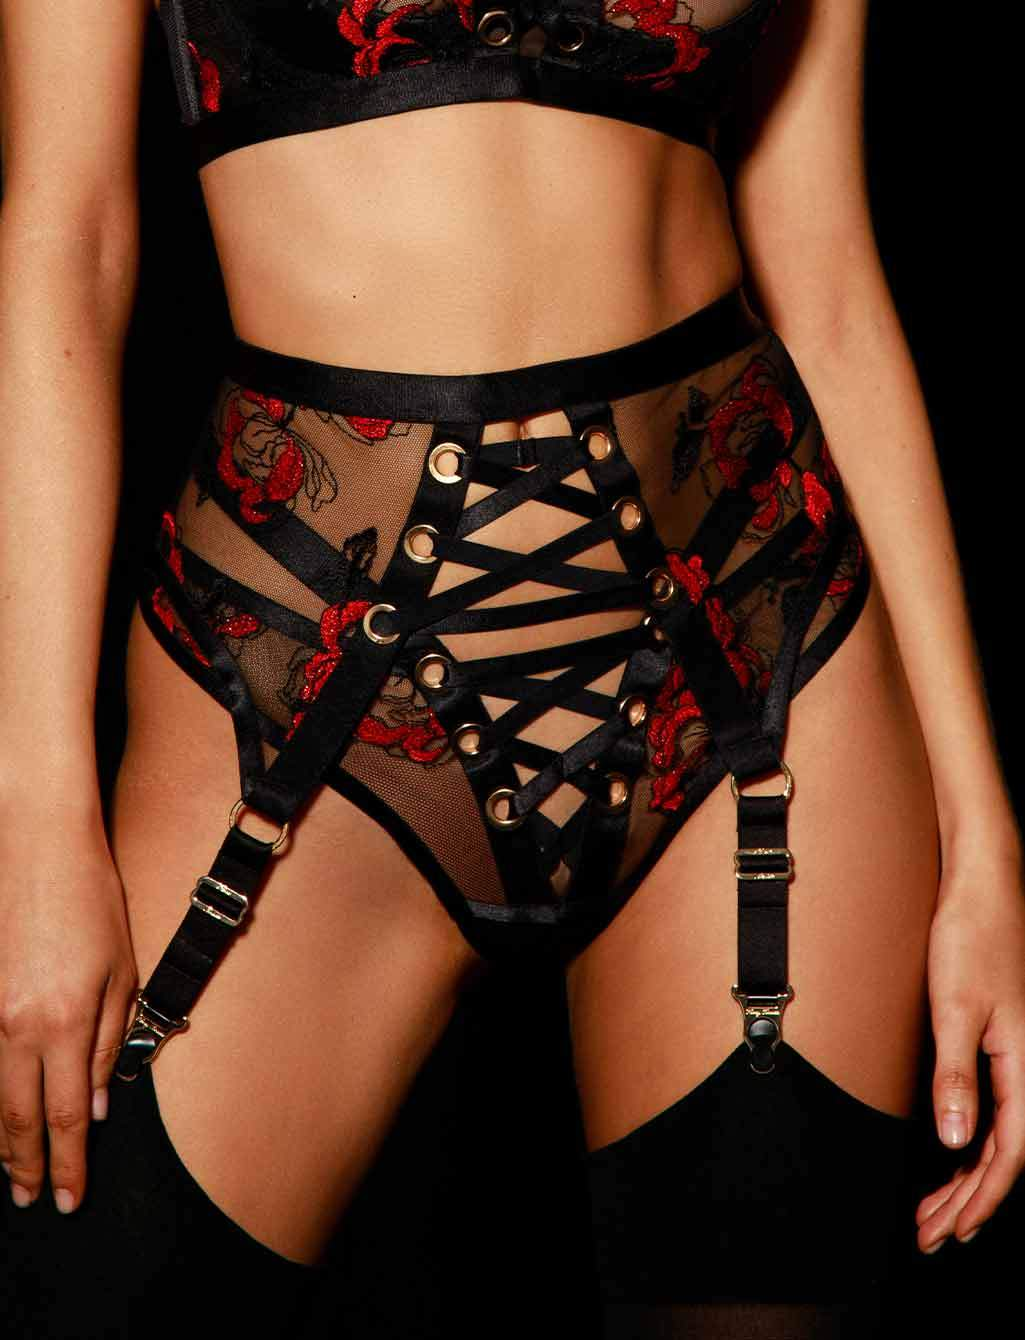 Freyah Lace Up Black & Red Suspender - Shop Suspenders | Honey Birdette